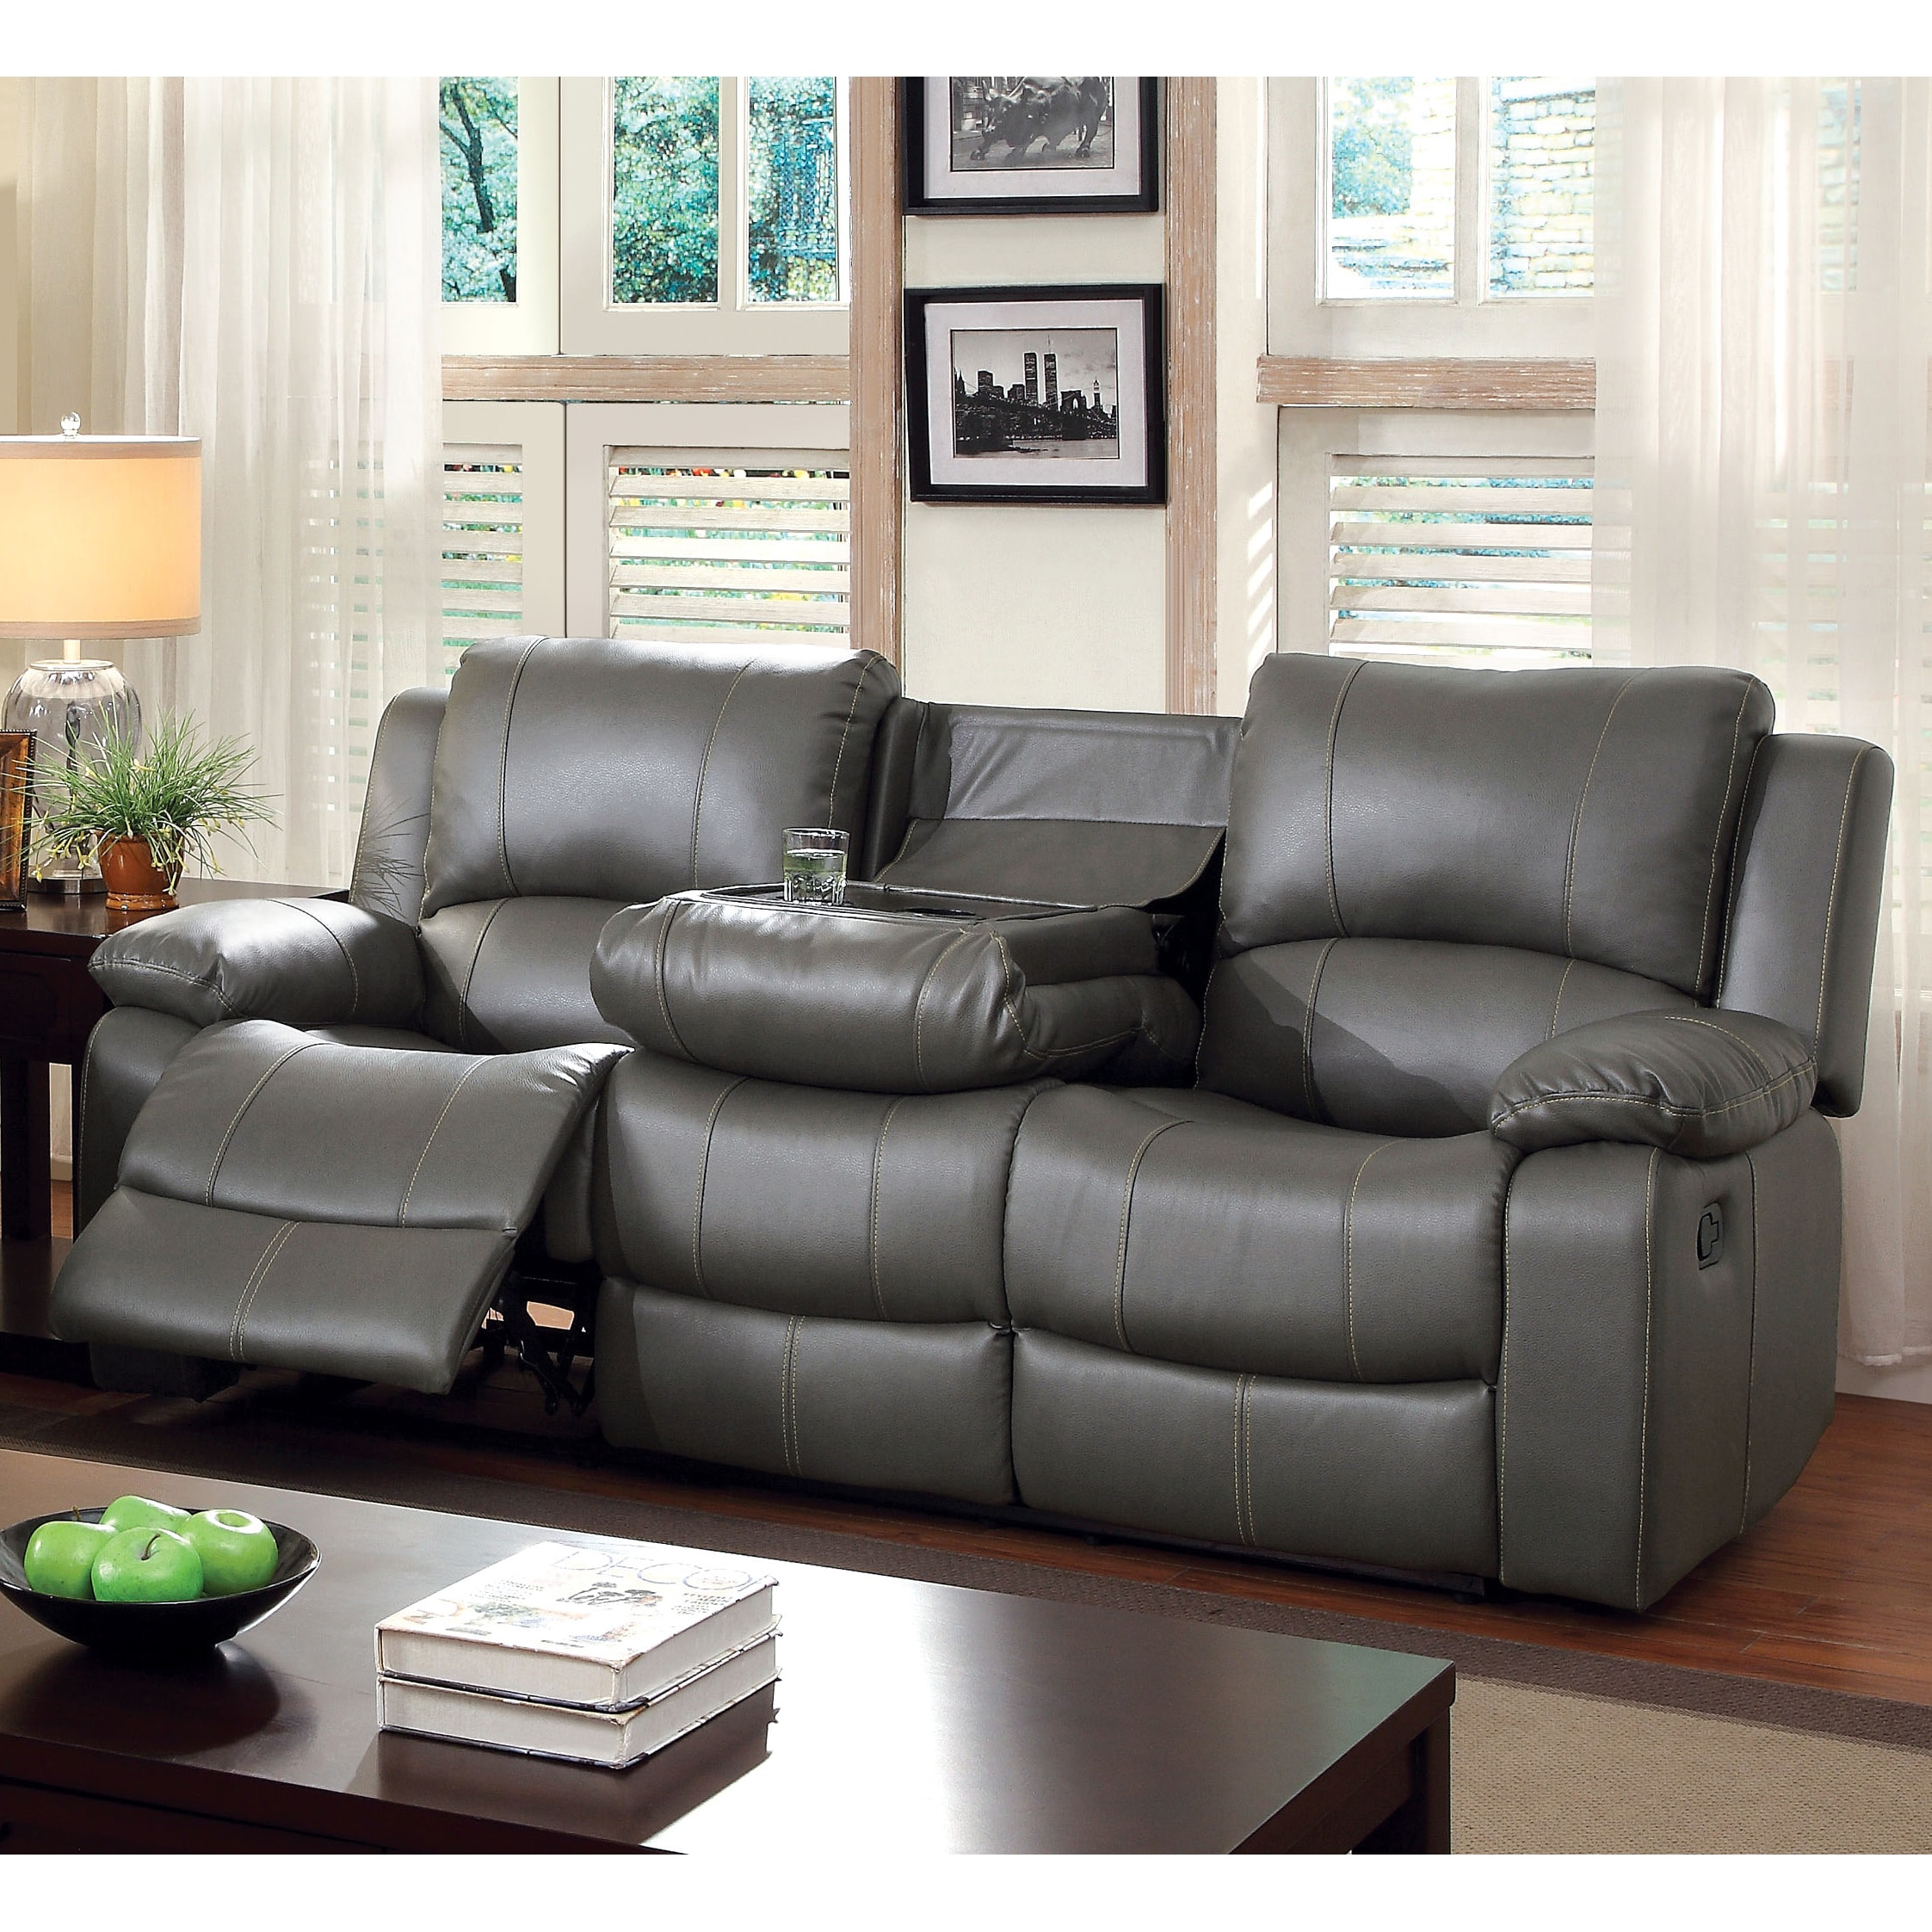 Furniture Of America Rembren Grey Leather Reclining Sofa On Free Shipping Today 9759548